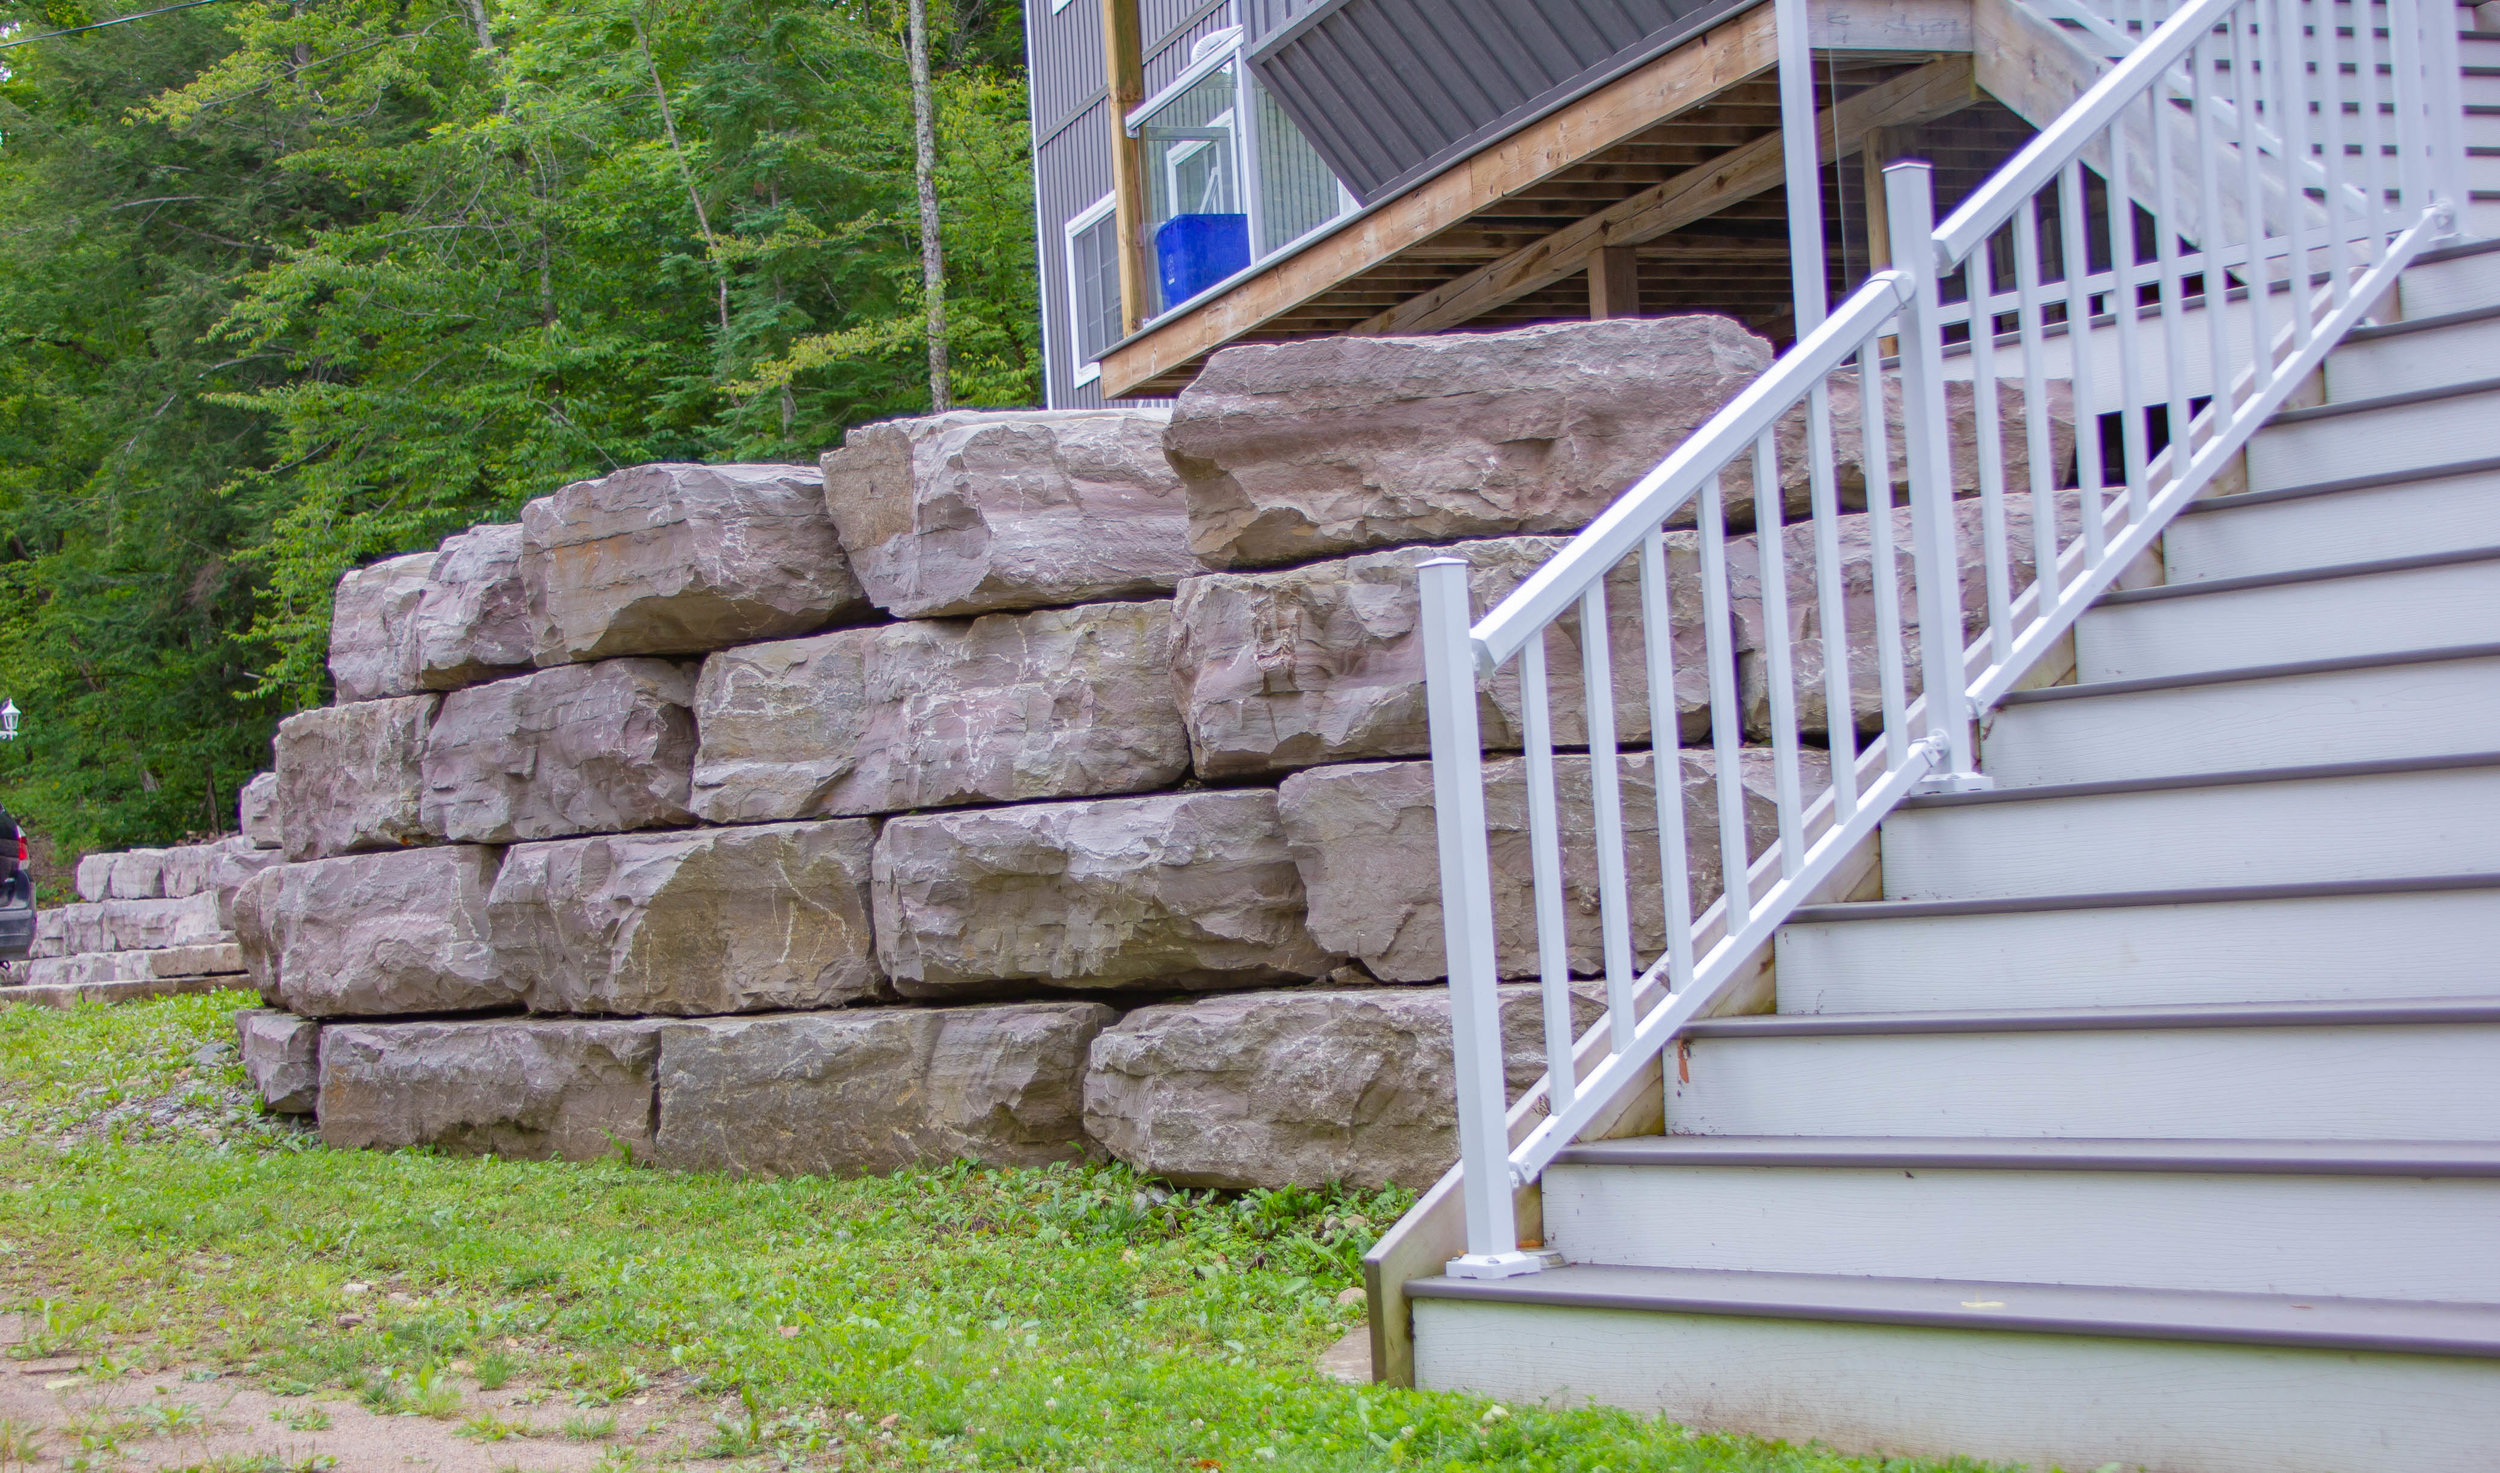 Stone Retaining Wall Against House